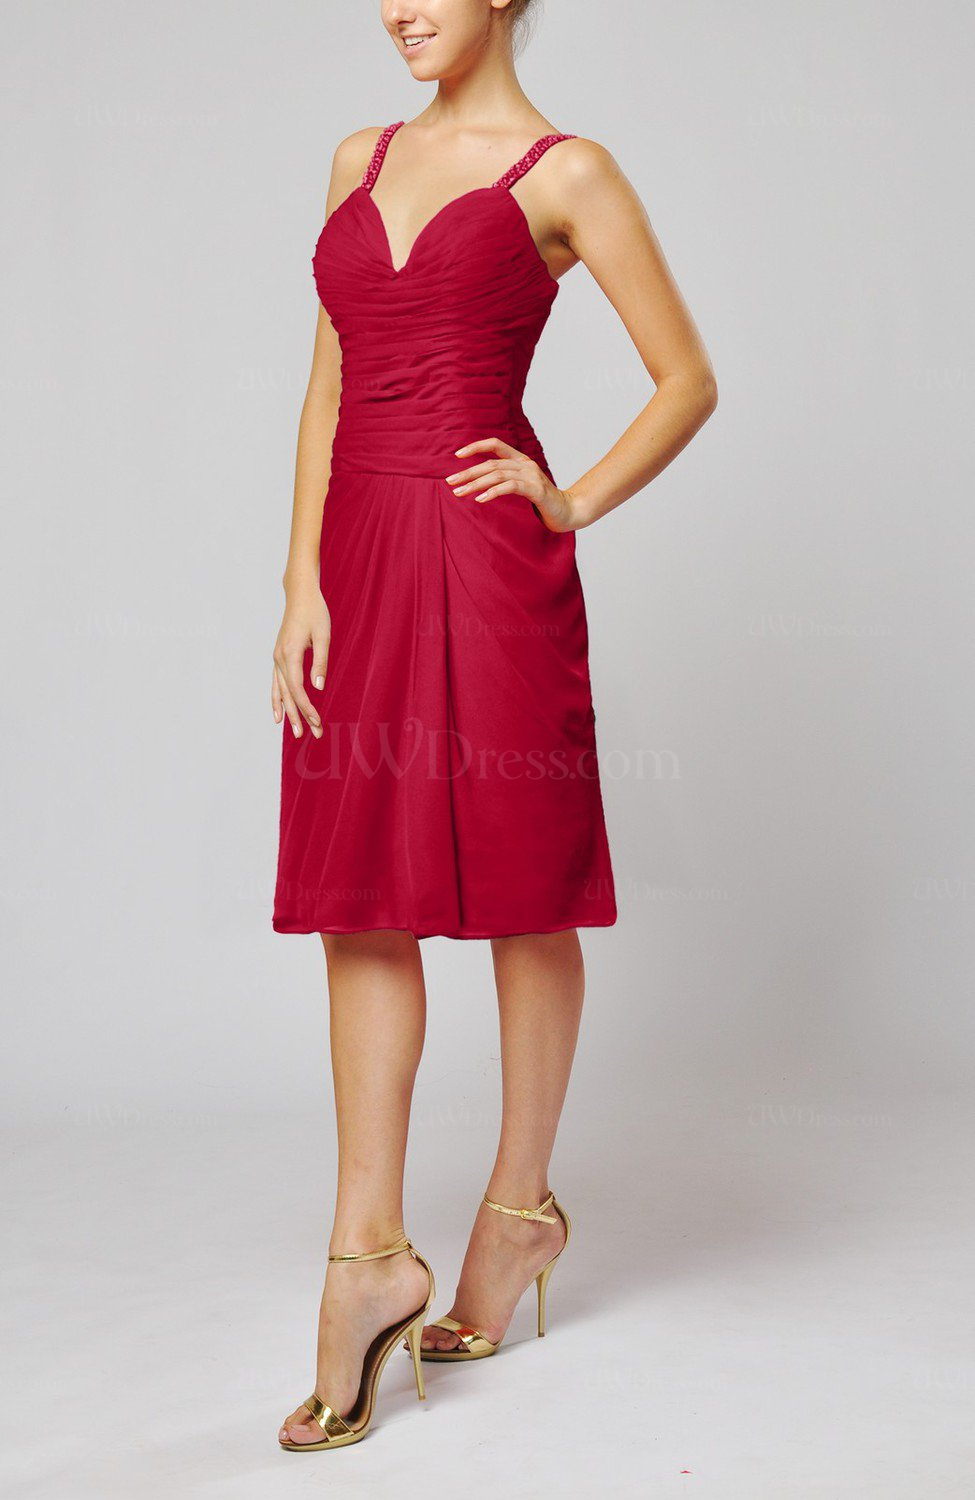 dark red plain sleeveless backless chiffon ruching wedding ForBackless Wedding Guest Dresses